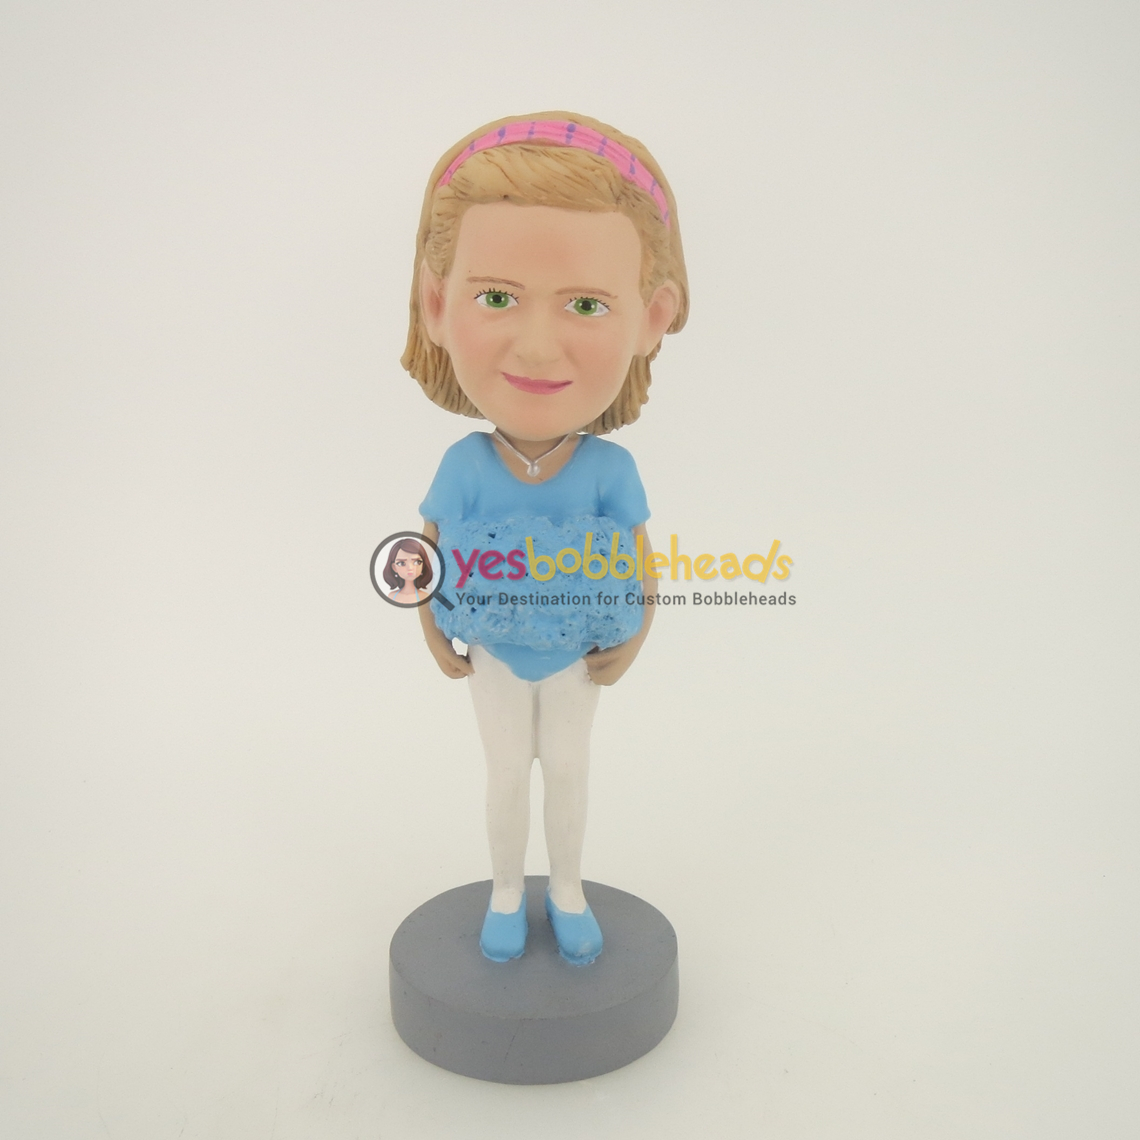 Picture of Custom Bobblehead Doll: Light Blue Clothes Girl